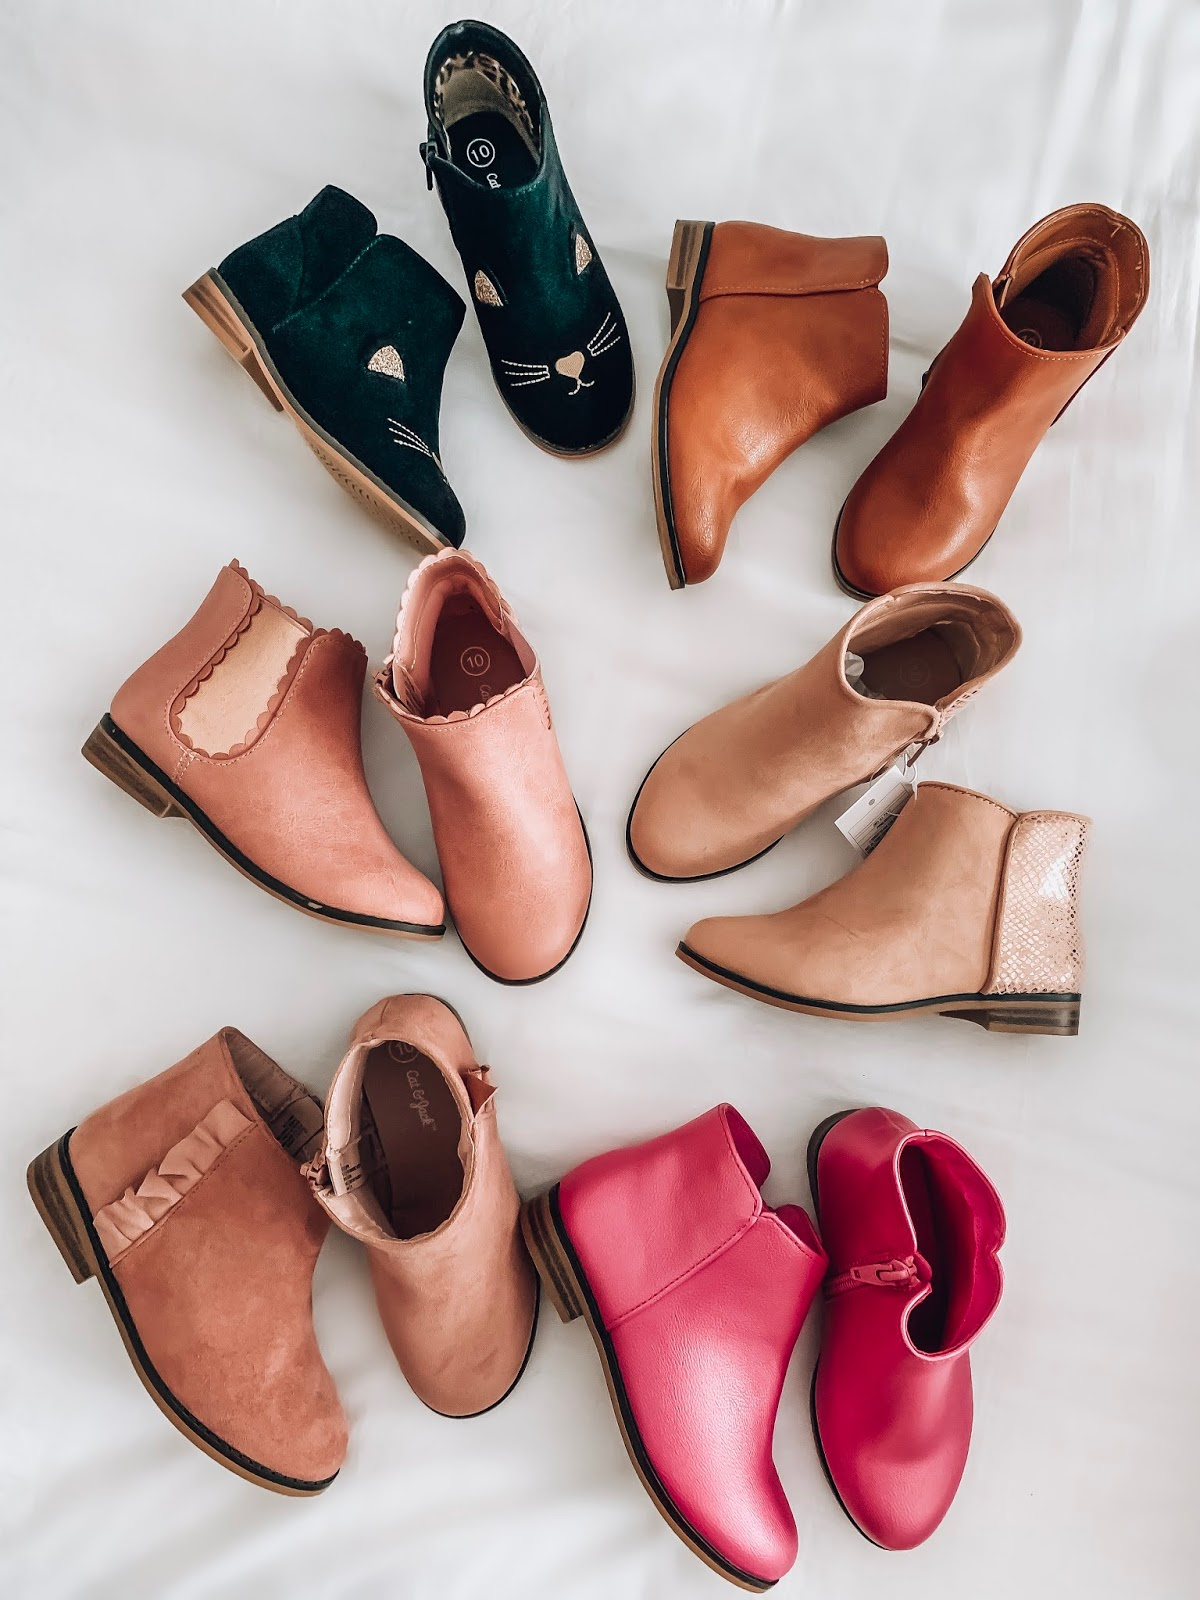 Target Fall 2019 Finds for Kids - Madeline's Picks - Booties for Toddler Girls - Something Delightful Blog #Kidsfallfashion